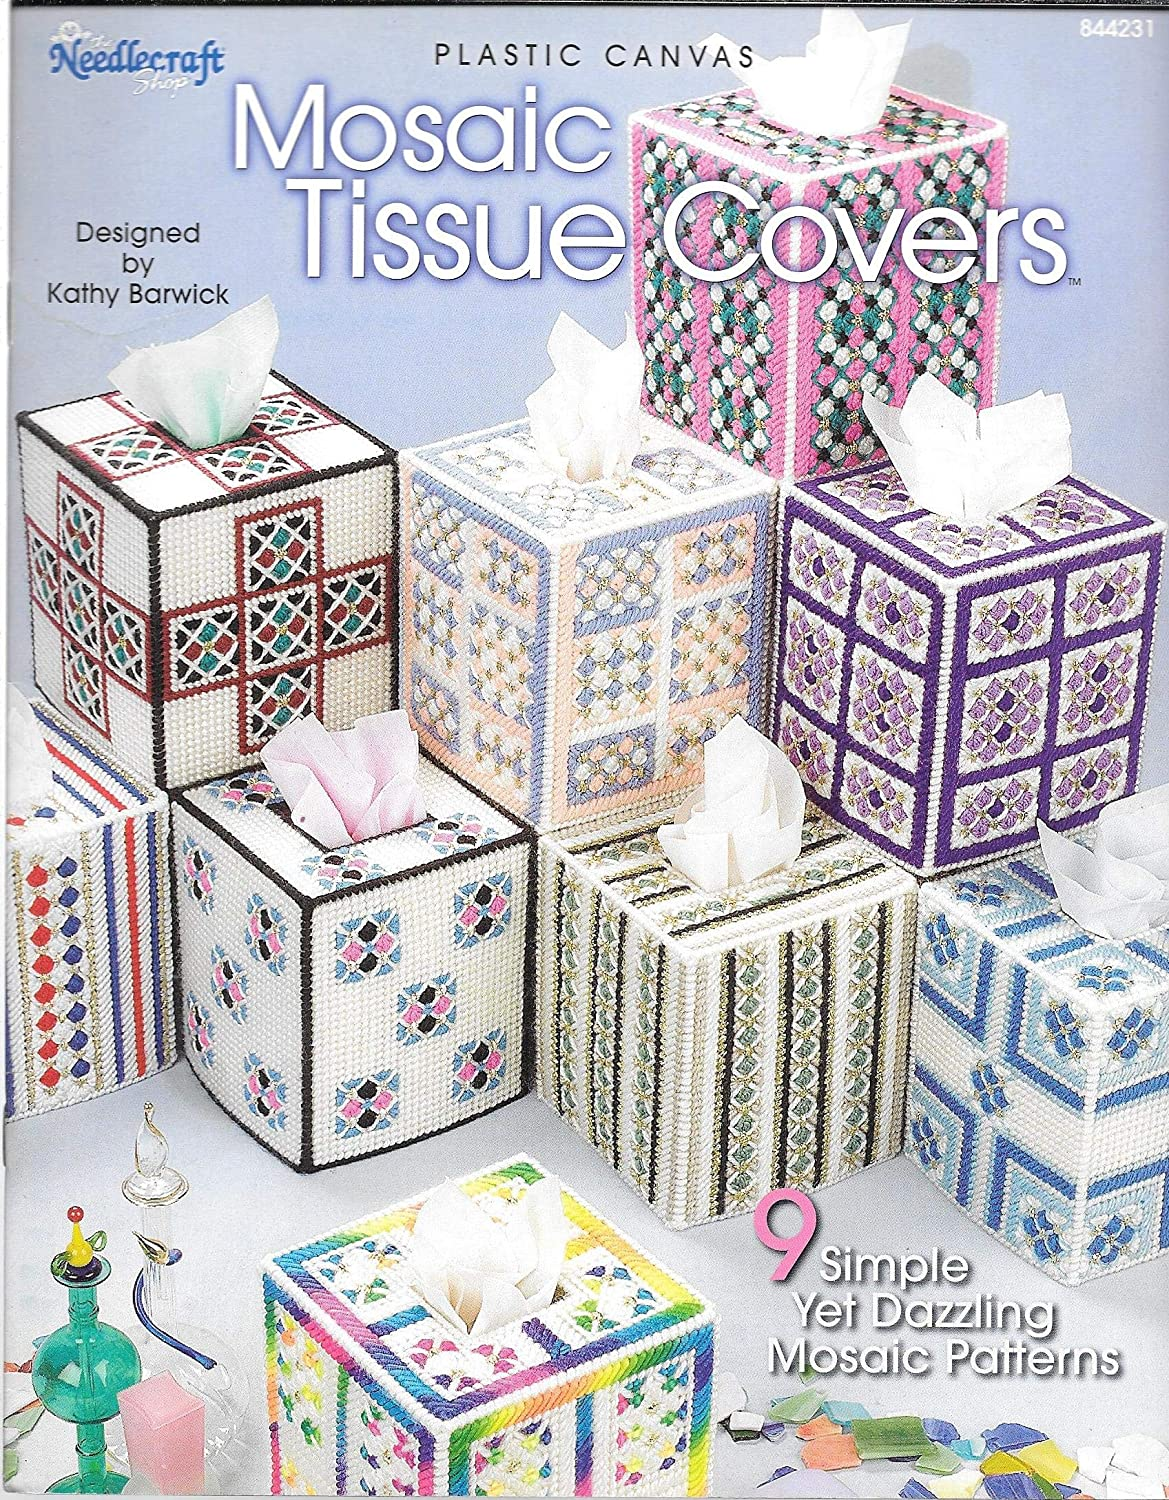 Amazon Com Plastic Canvas Mosaic Tissue Covers By The Needlecraft Shop Leaflet 844231 9 Simple Yet Dazzling Mosaic Patterns,Modern Interior Design For Medicine Retail Shop